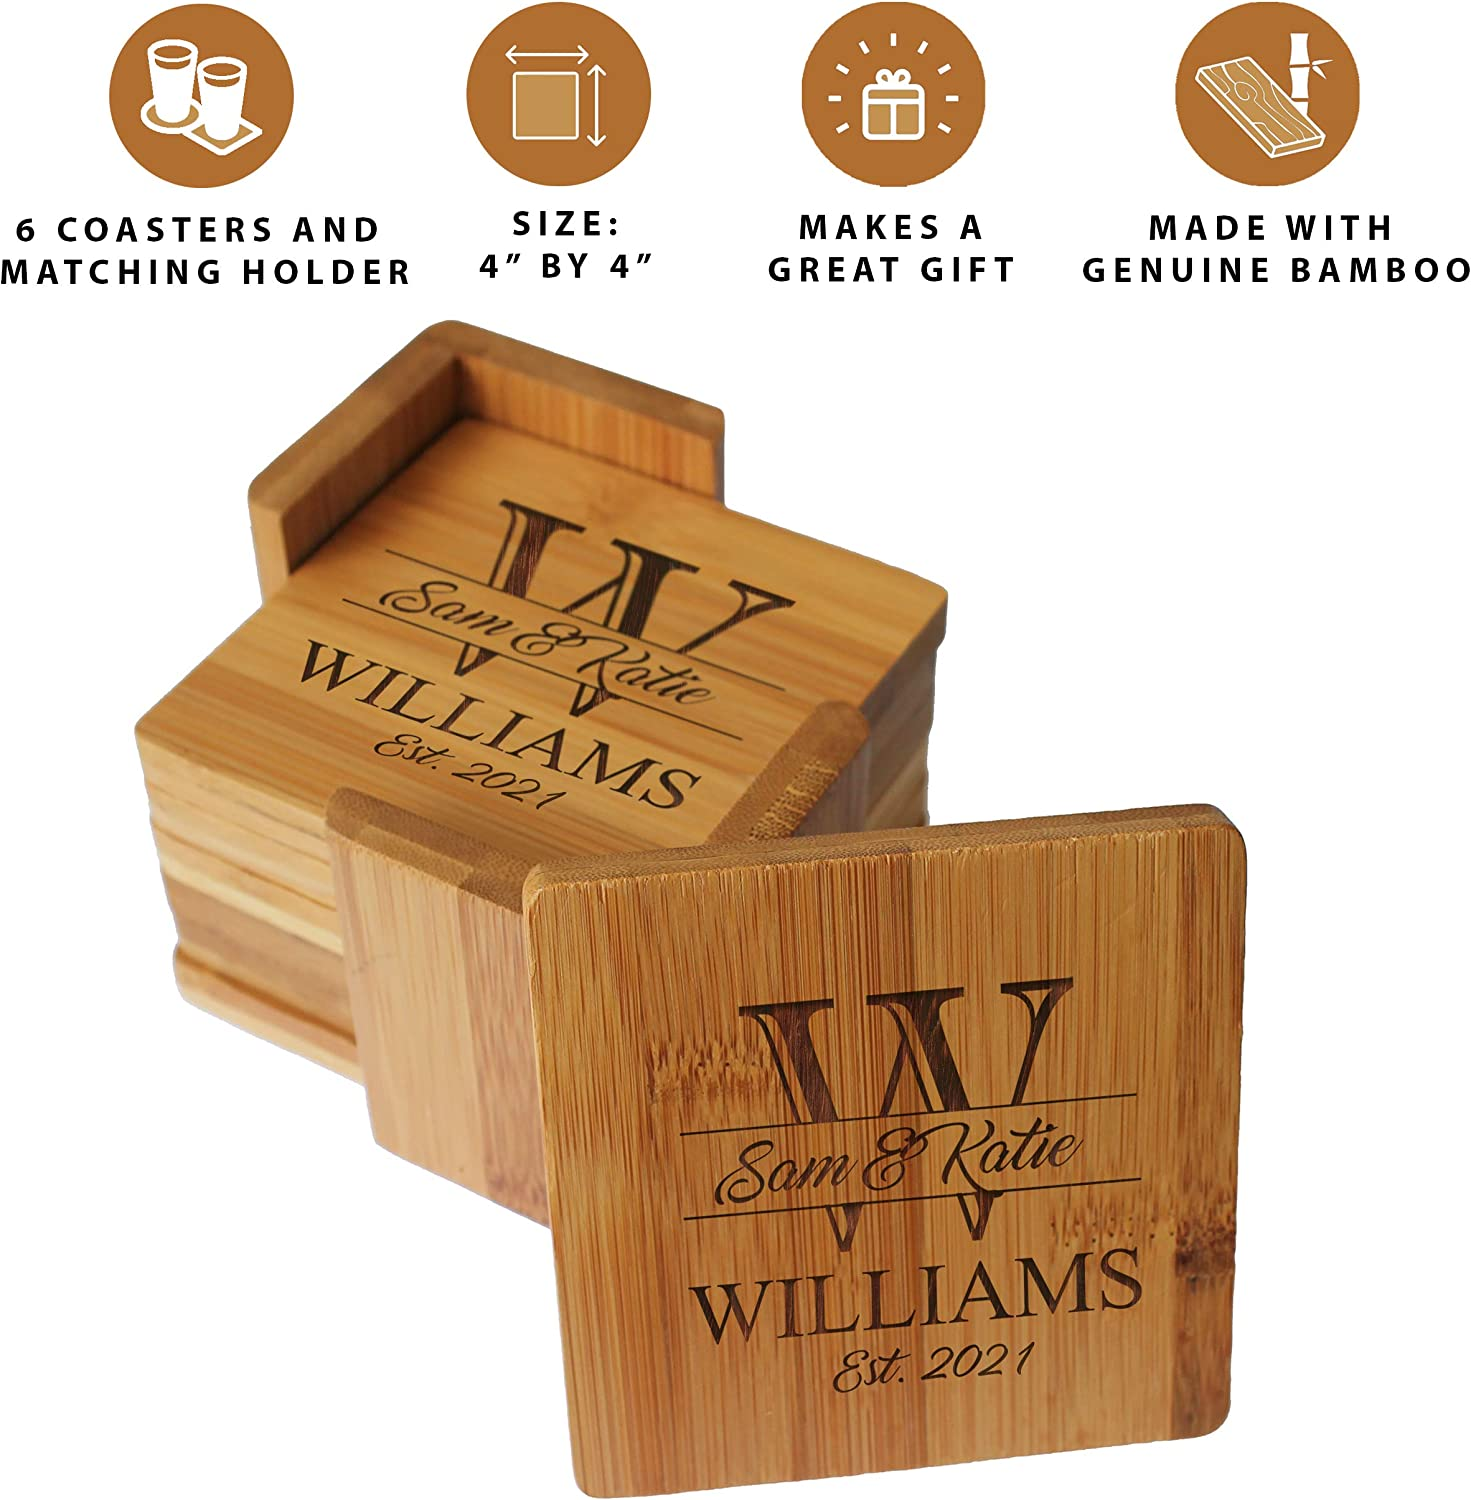 Amazon Com Custom Engraved Bamboo Wood Coasters Personalized Coaster Set For Drinks Weddings Couples With Holder Square Bamboo Kitchen Dining